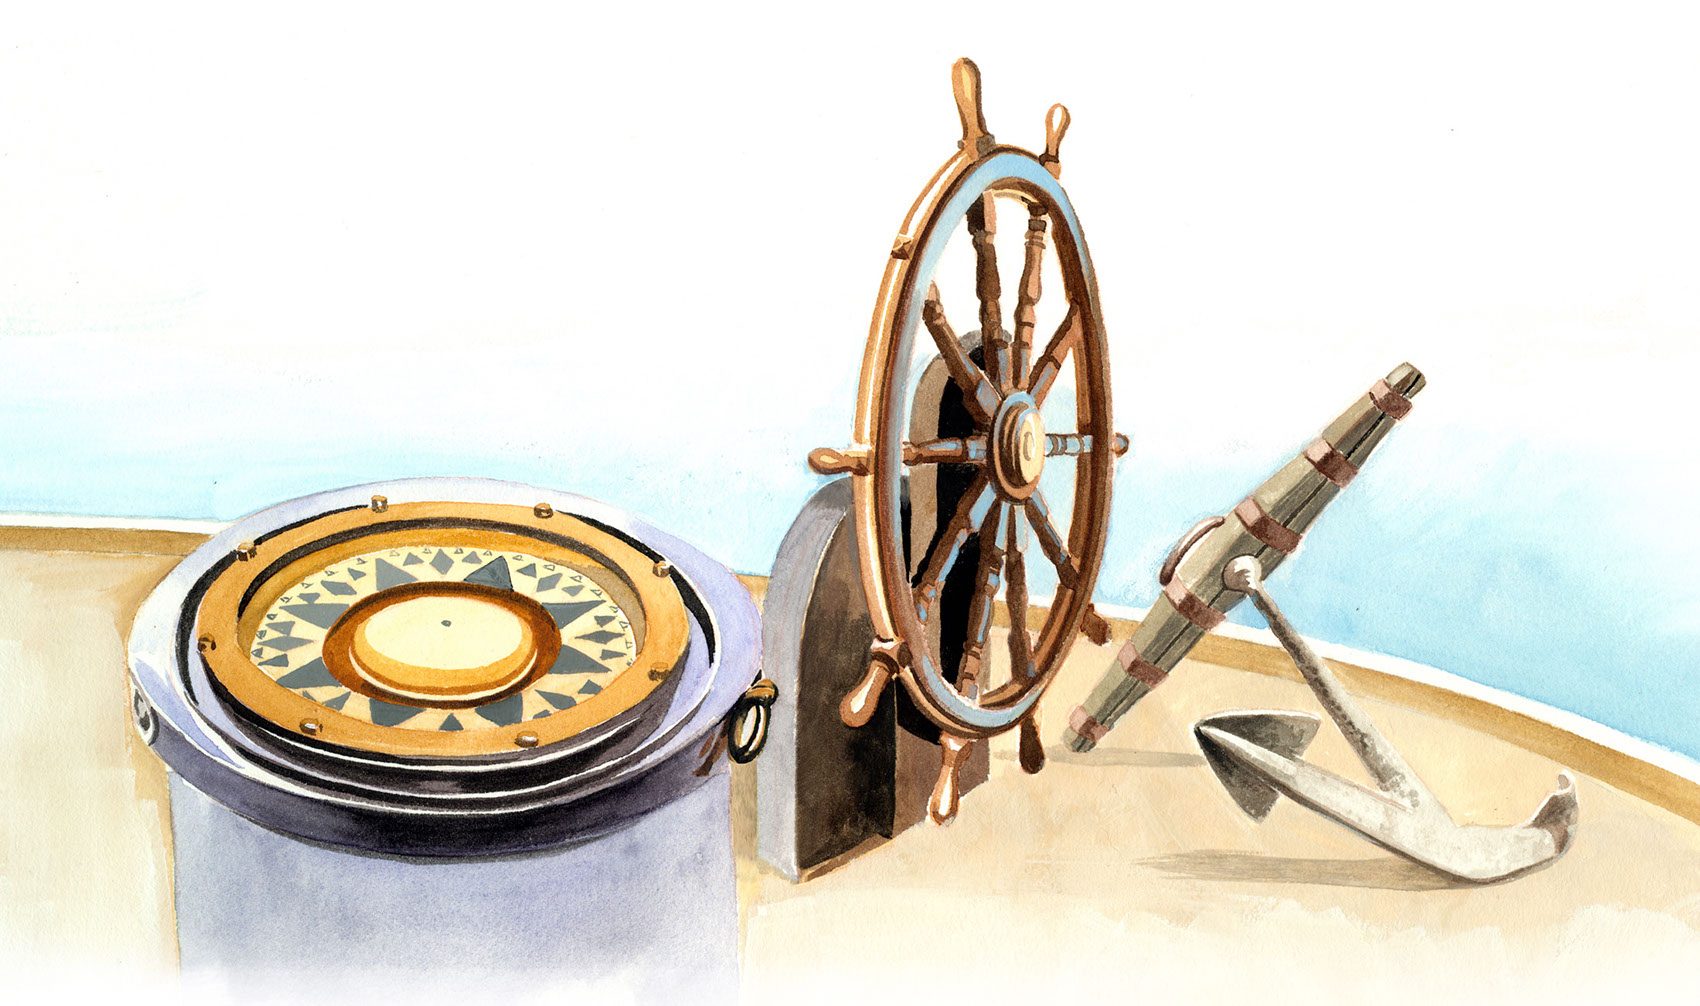 illustration-Retro_Admirals compass anchor steering wheel-Pastiche